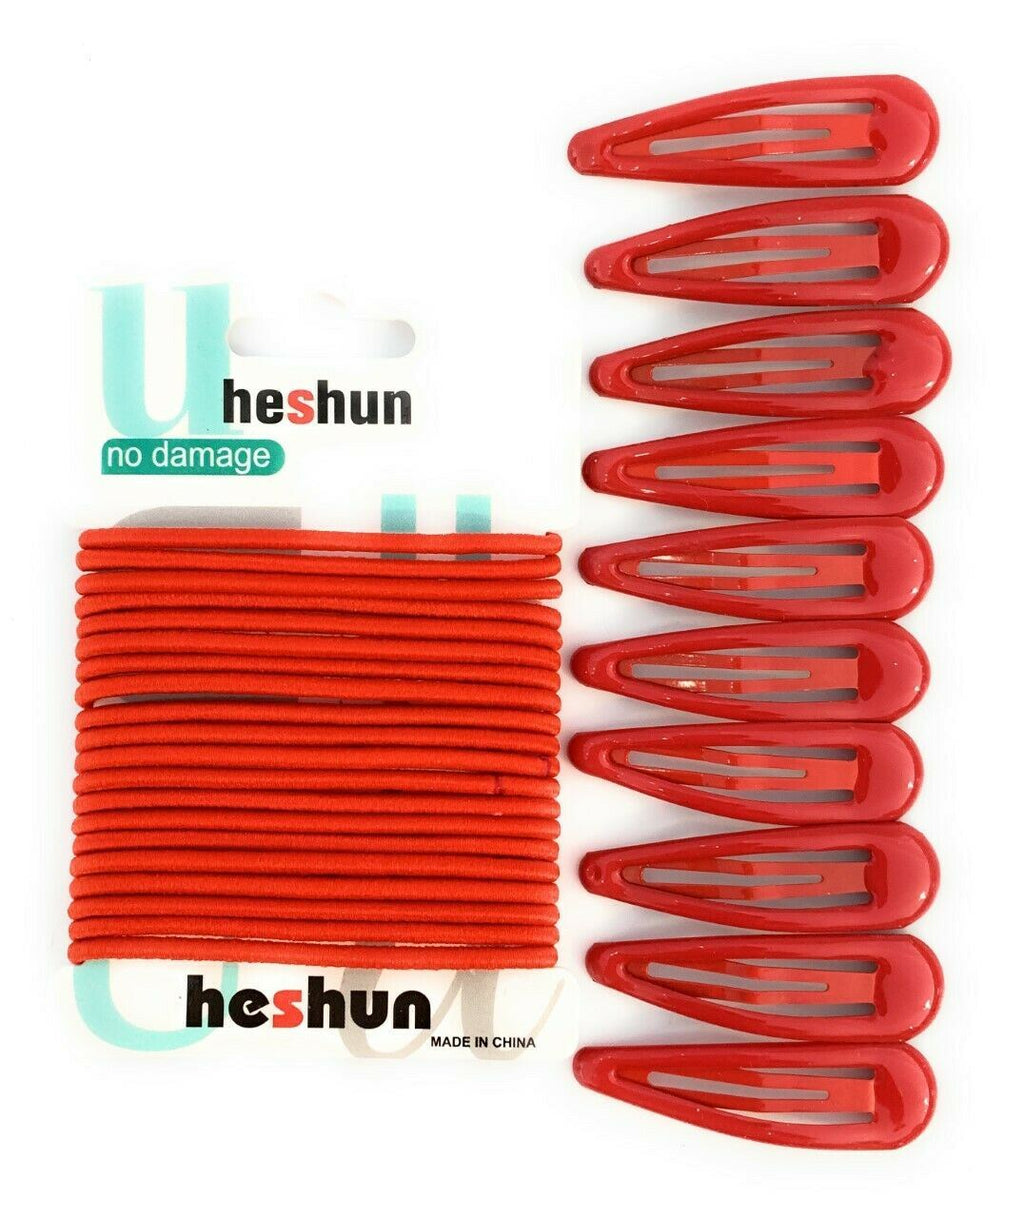 30 PCS Sleepie Elastics Hair Head Bands Snap Clips Hairbands Bobbles SCHOOL SET[Red,Full Set (Hair Elastics and Clips)]